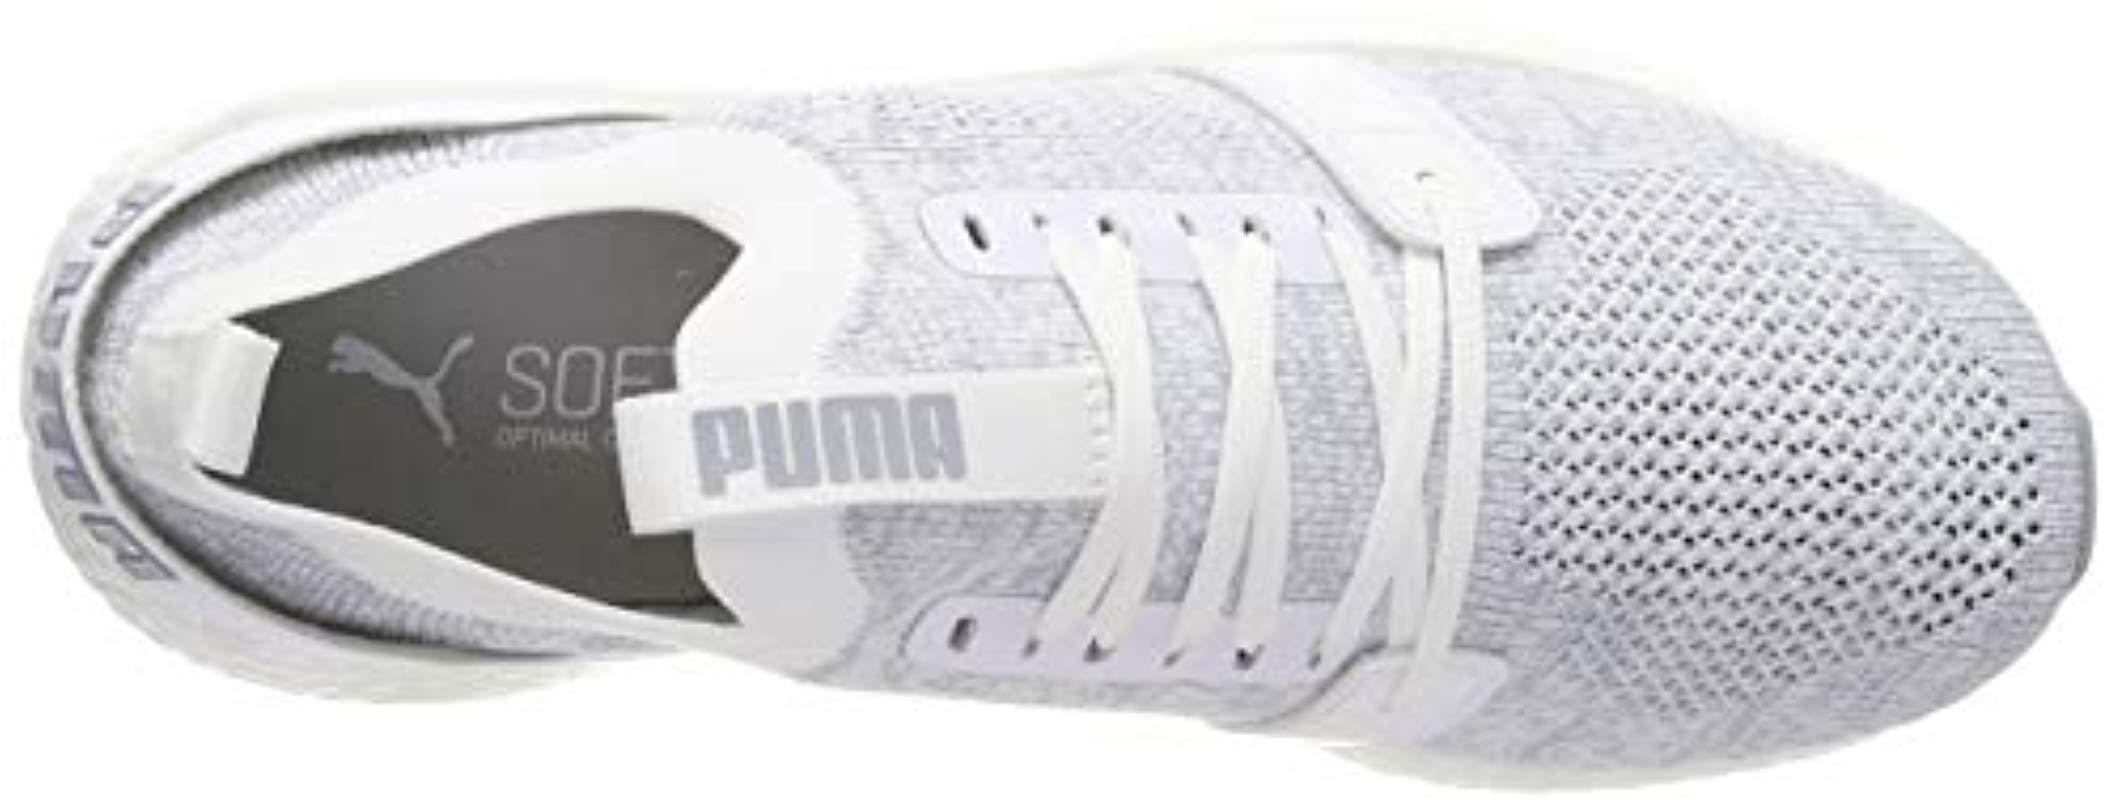 330486b291596c PUMA - White Nrgy Neko Engineer Knit Wns Competition Running Shoes - Lyst.  View fullscreen